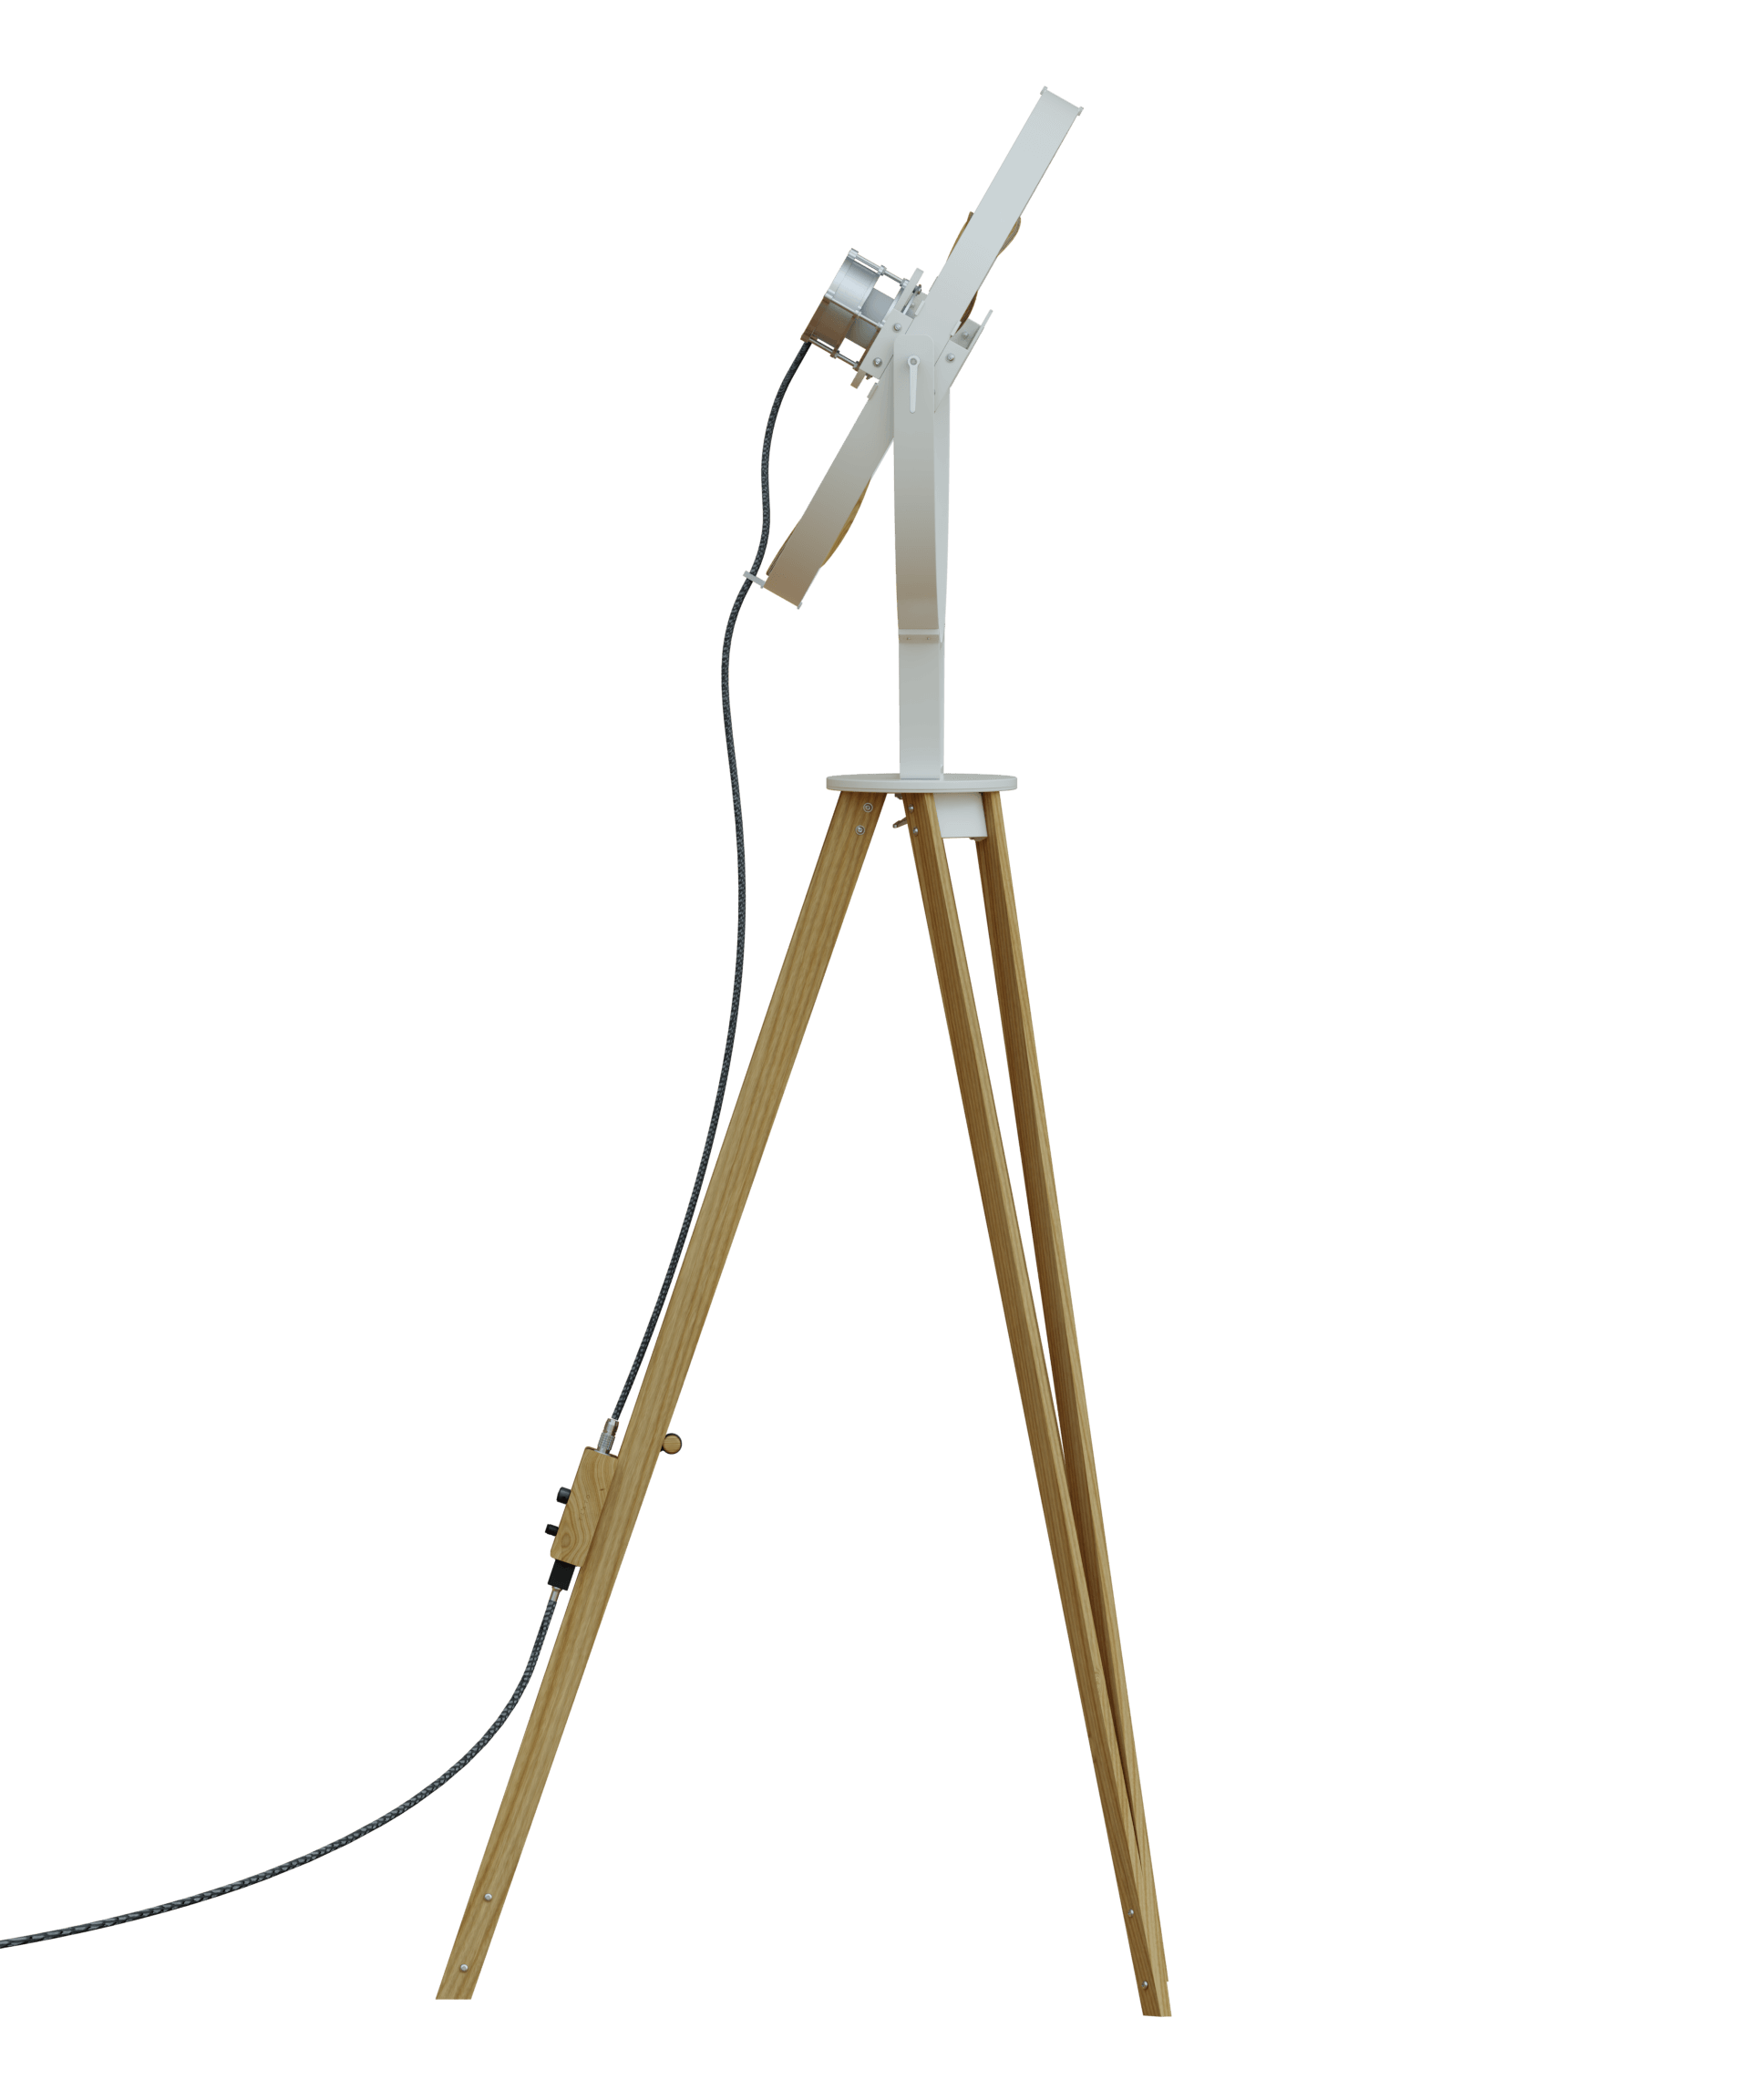 AURA White - TTATO´s wooden tripod fan in side view